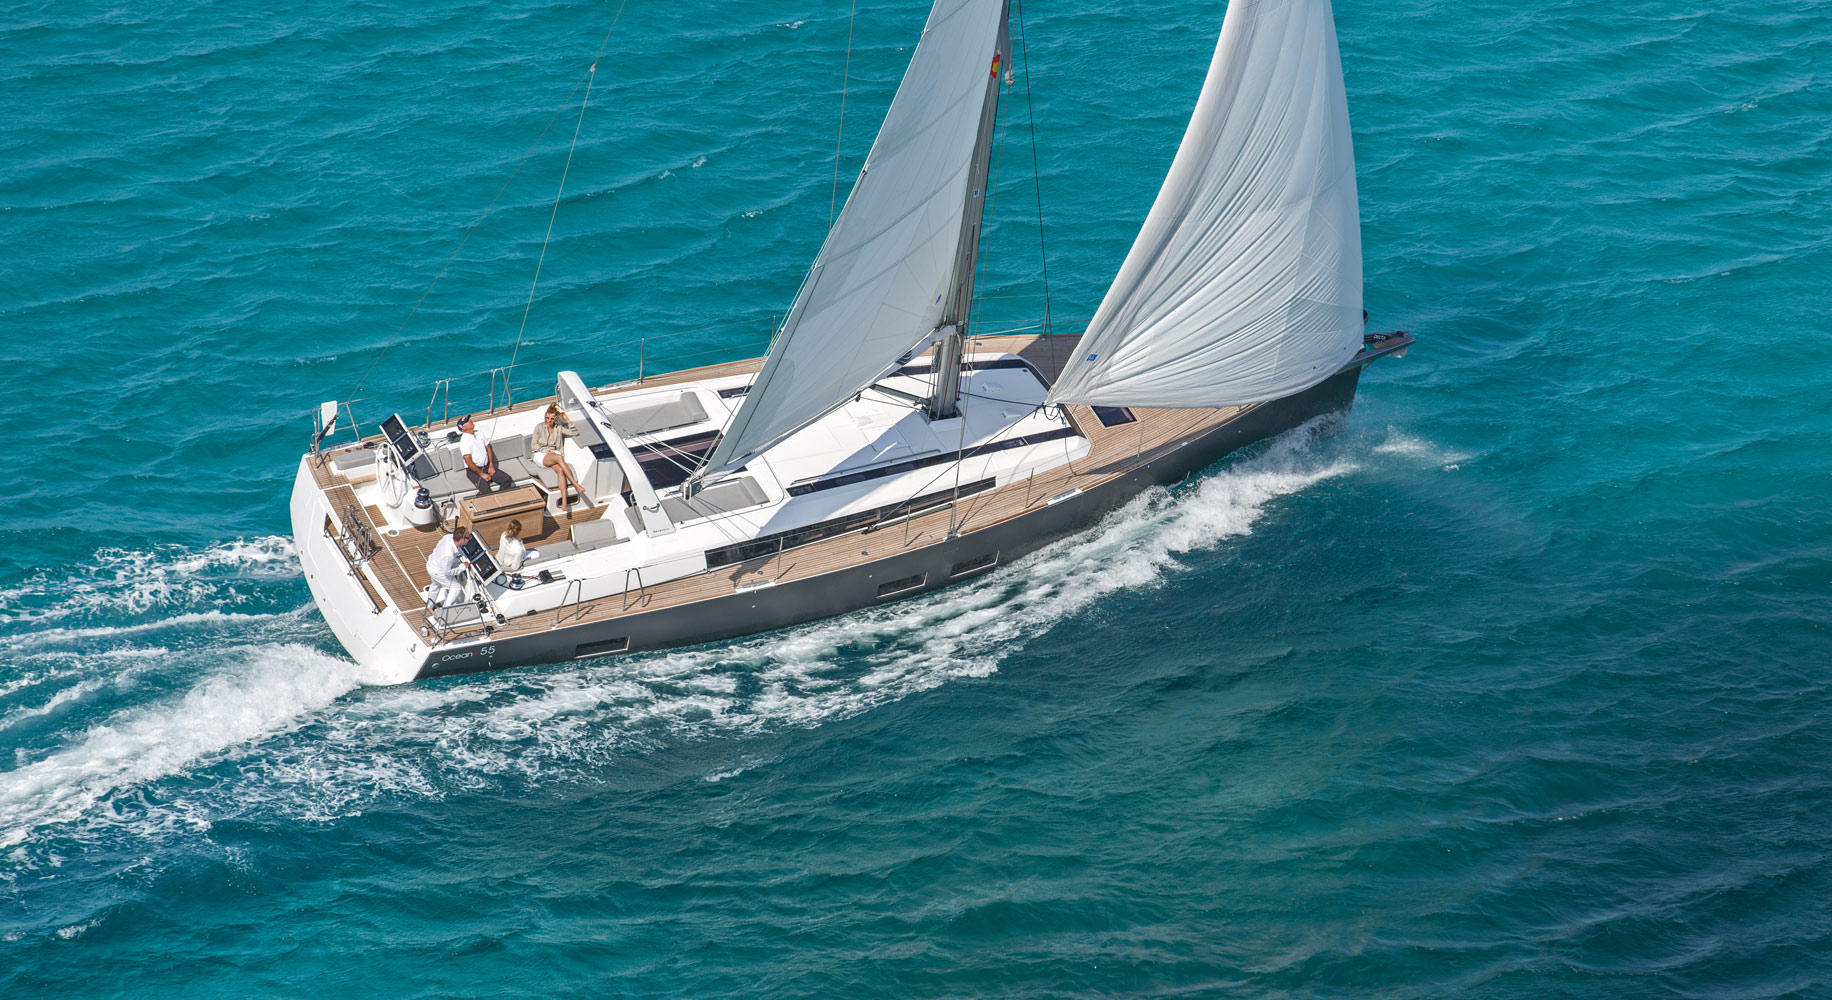 Oceanis 55 Sailboat for sale